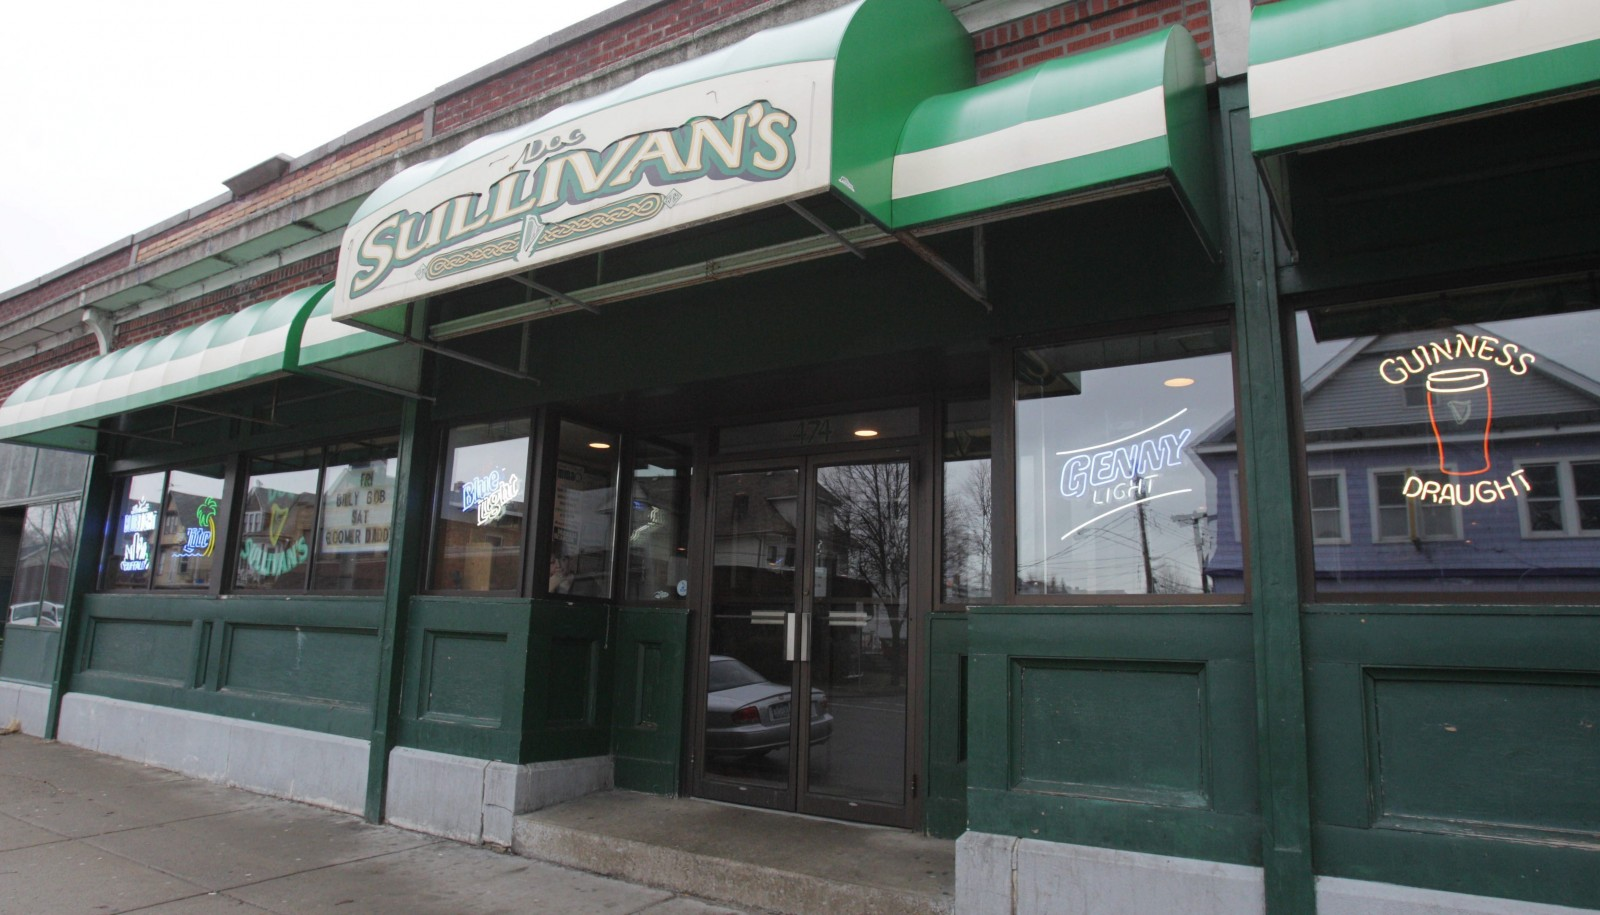 Doc Sullivan's is being spruced up under new ownership. (Sharon Cantillon/Buffalo News file photo)